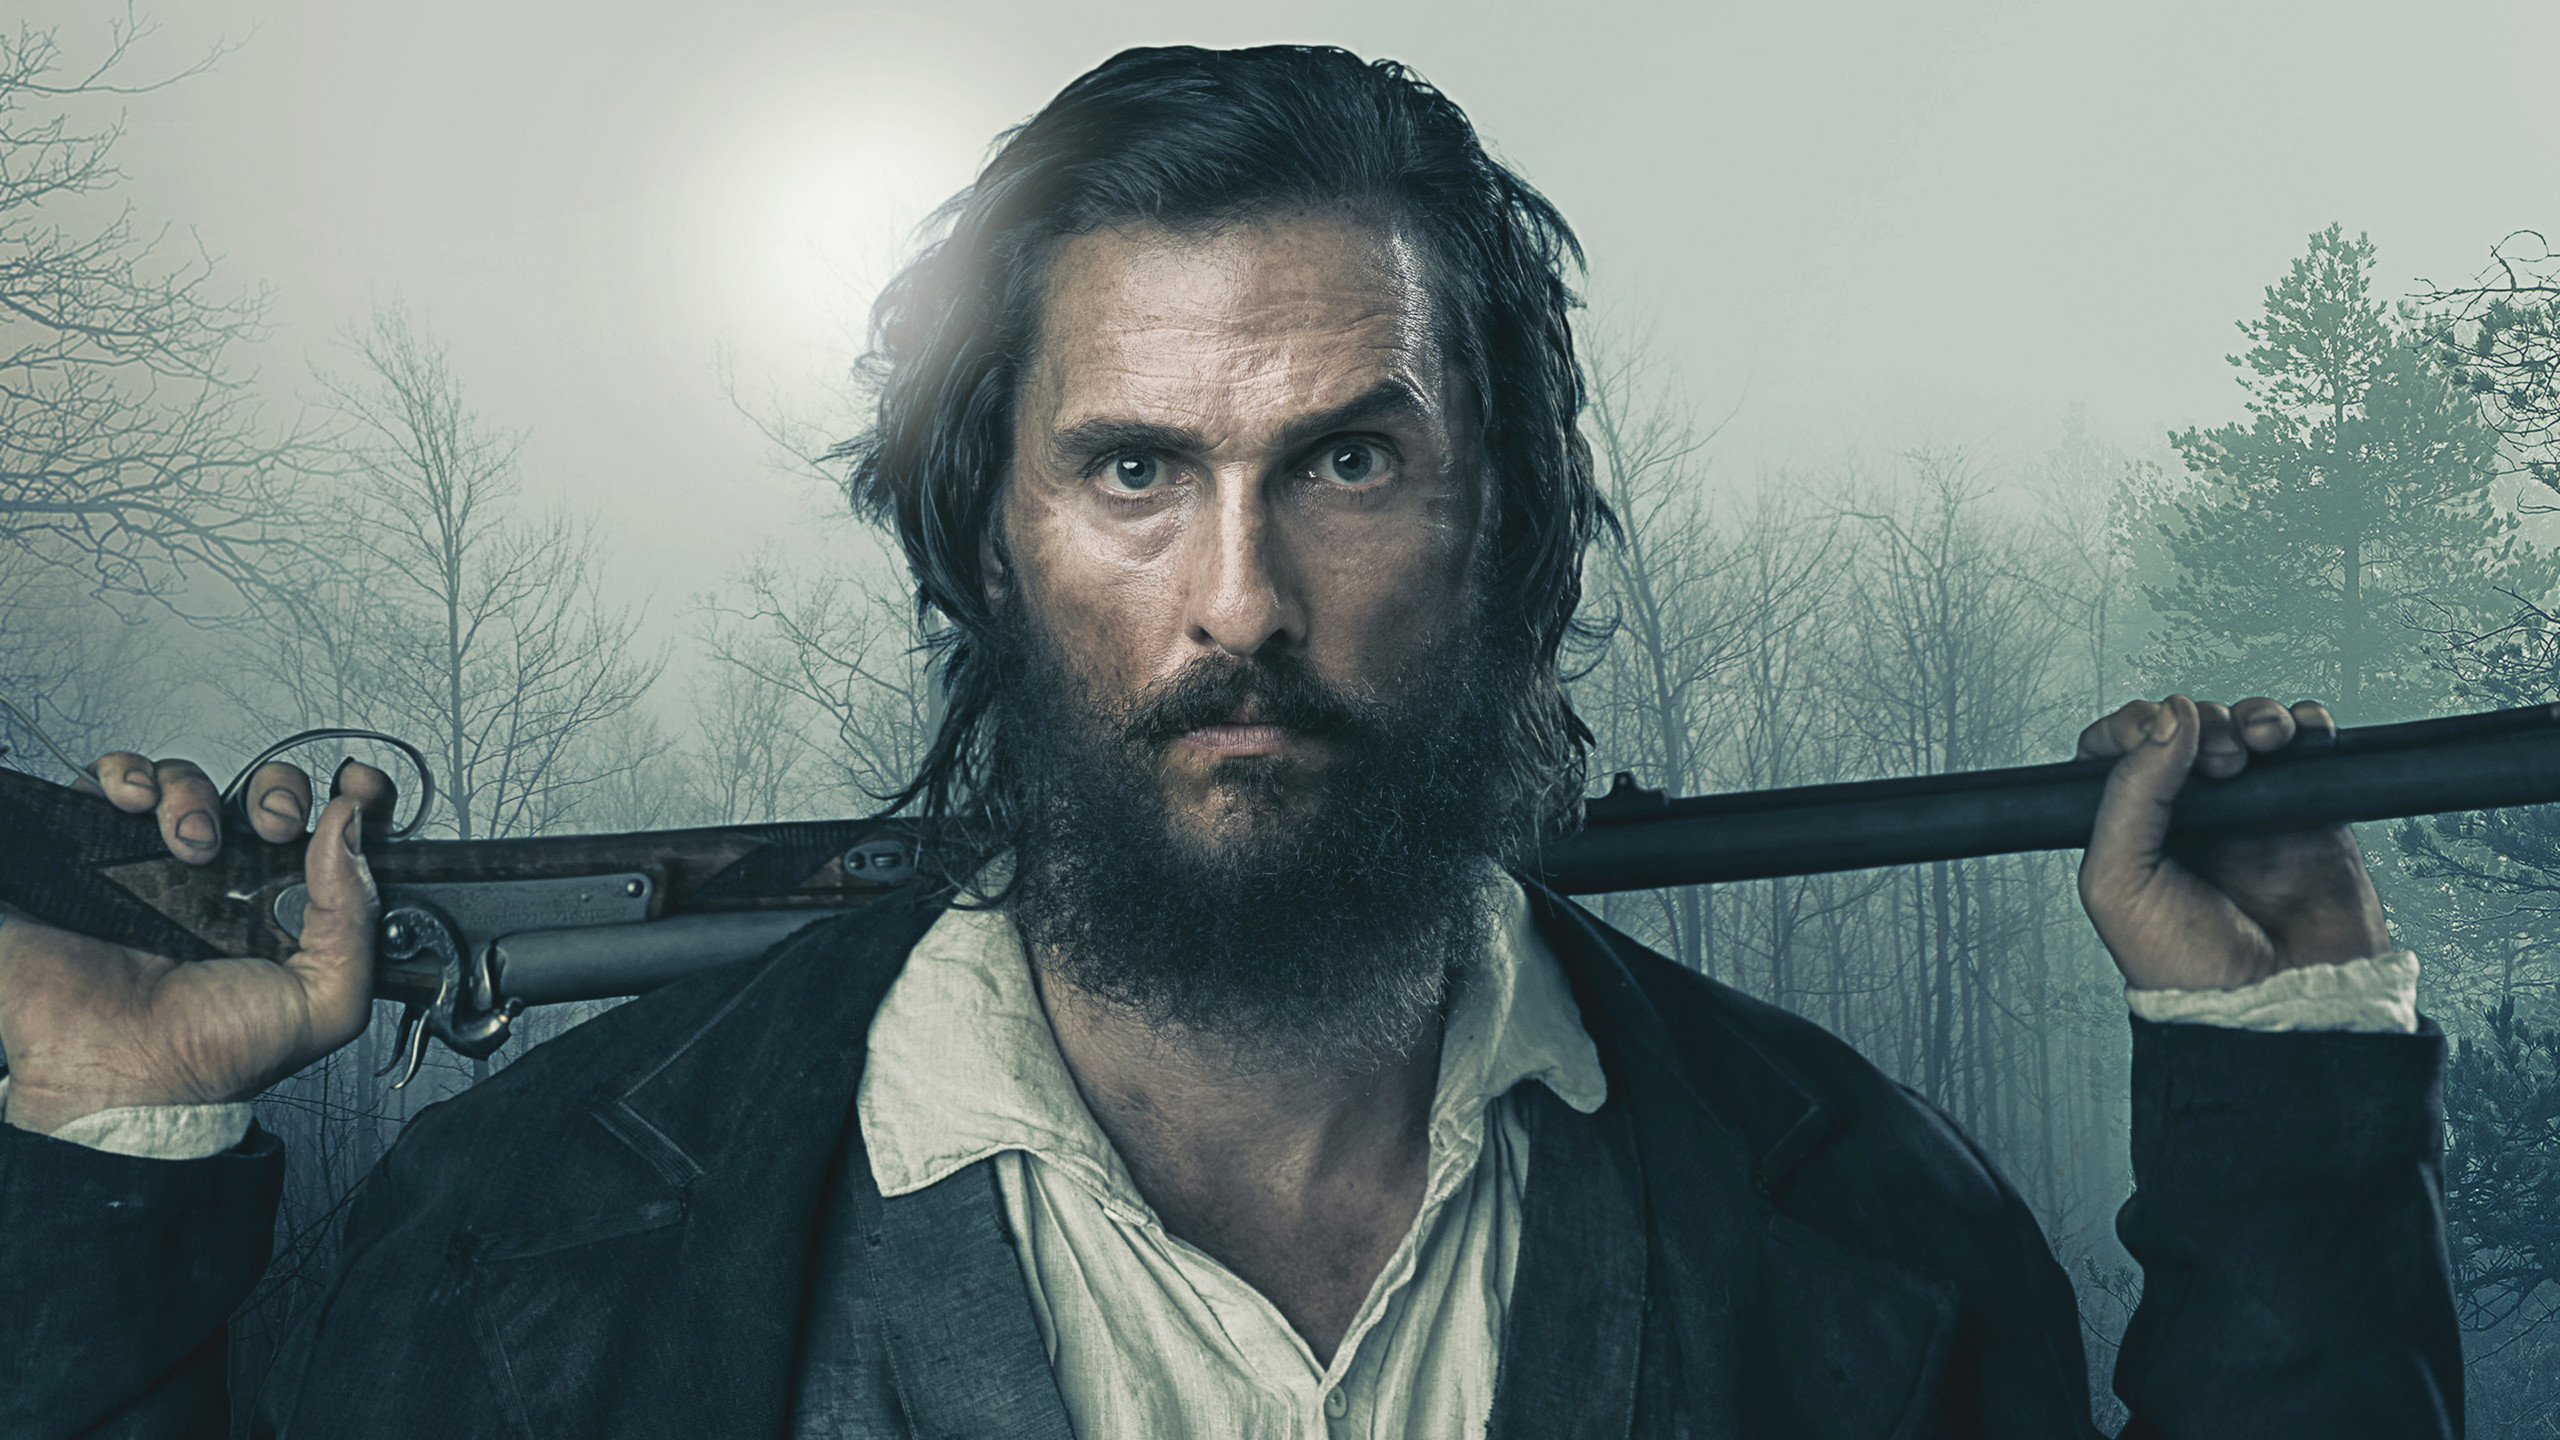 matthew_mcconaughey_free_state_of_jones-HD-2560x1440